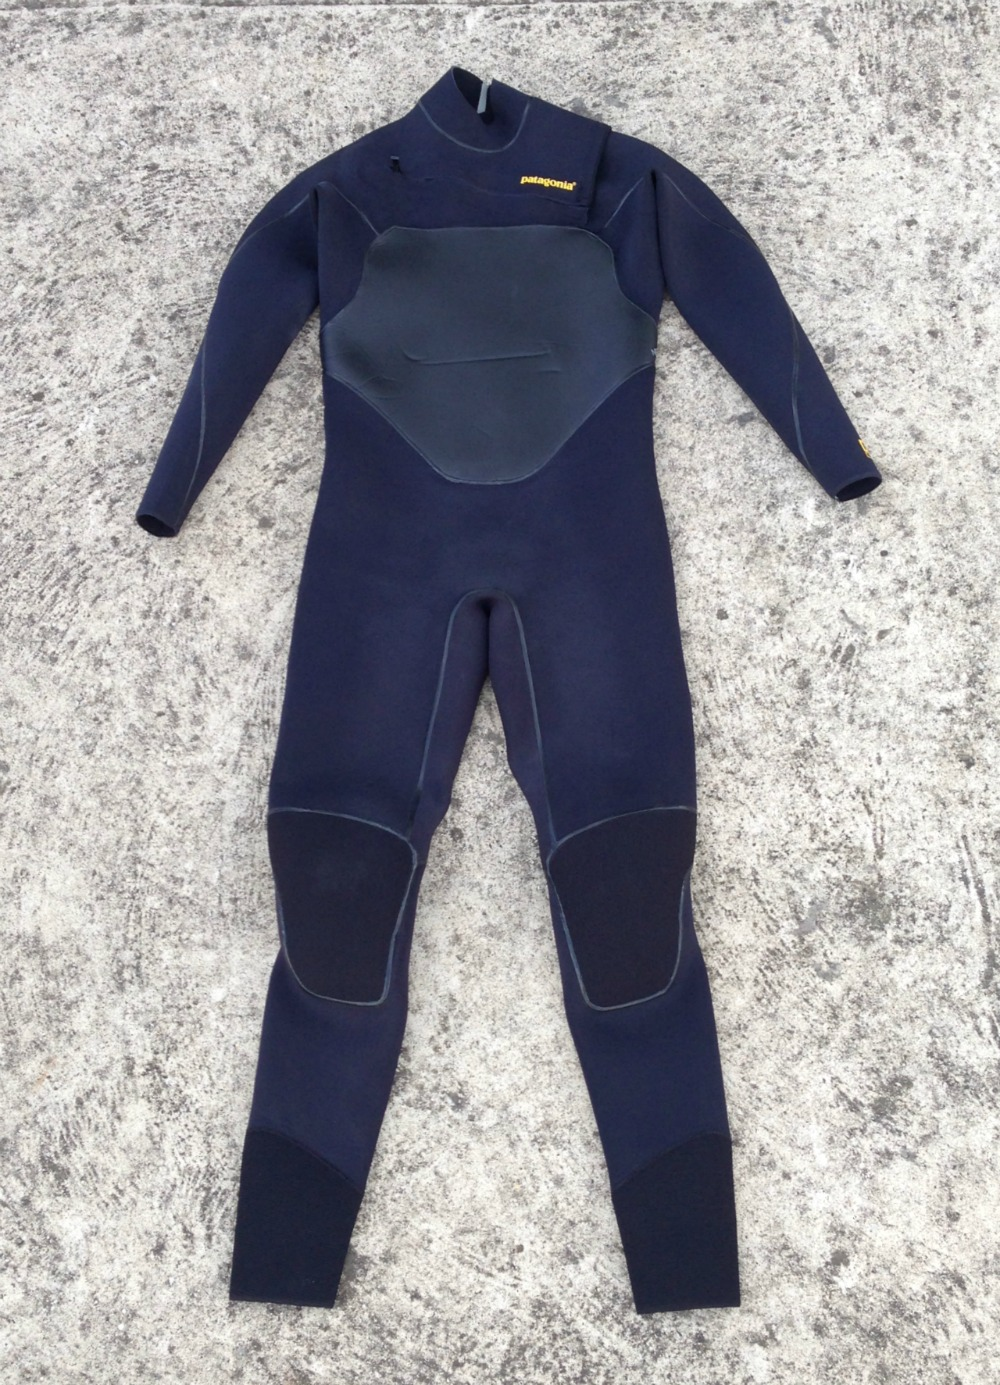 Secondhand Yulex Wetsuit